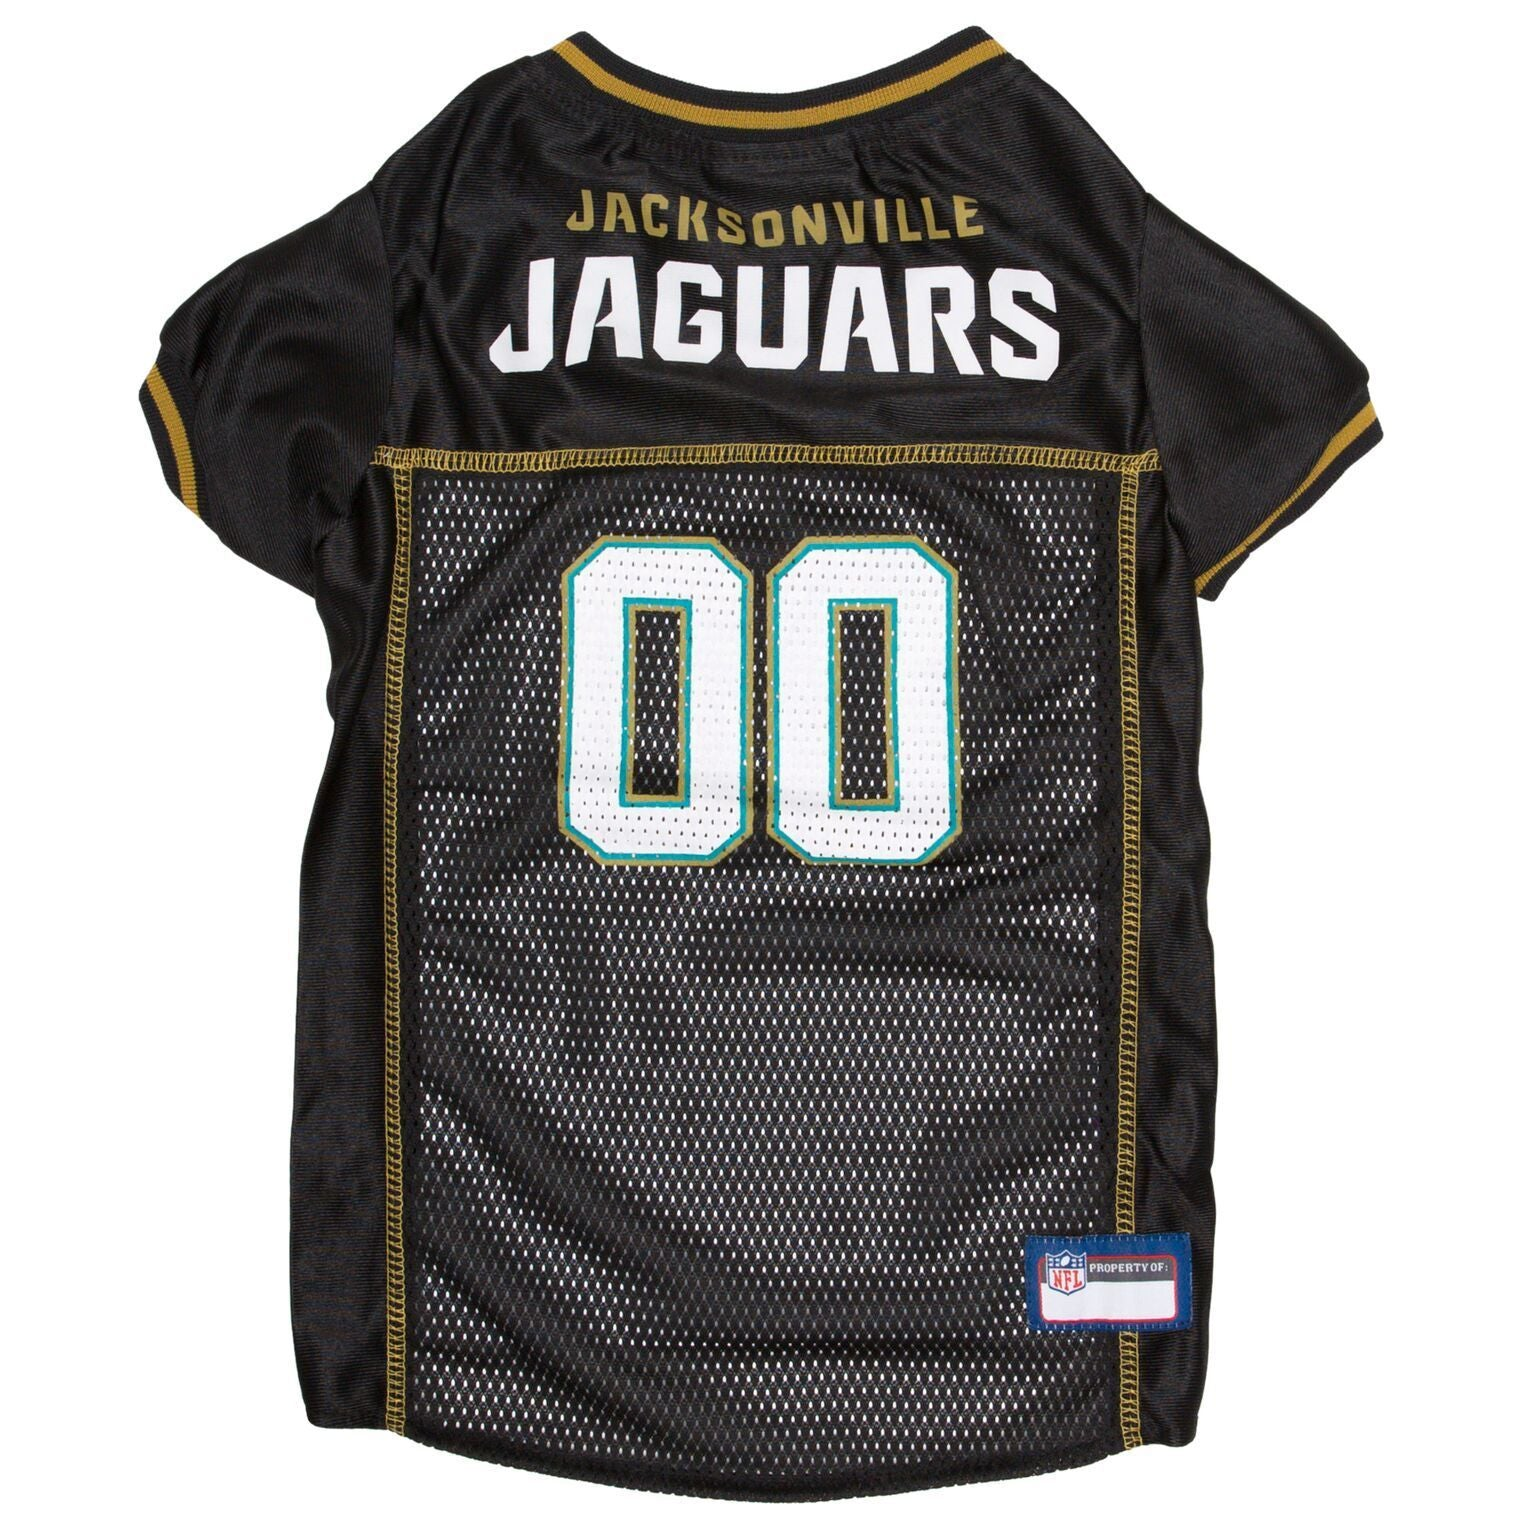 Jacksonville Jaguars Football Jersey Cheerleading Uniform Collar Leash